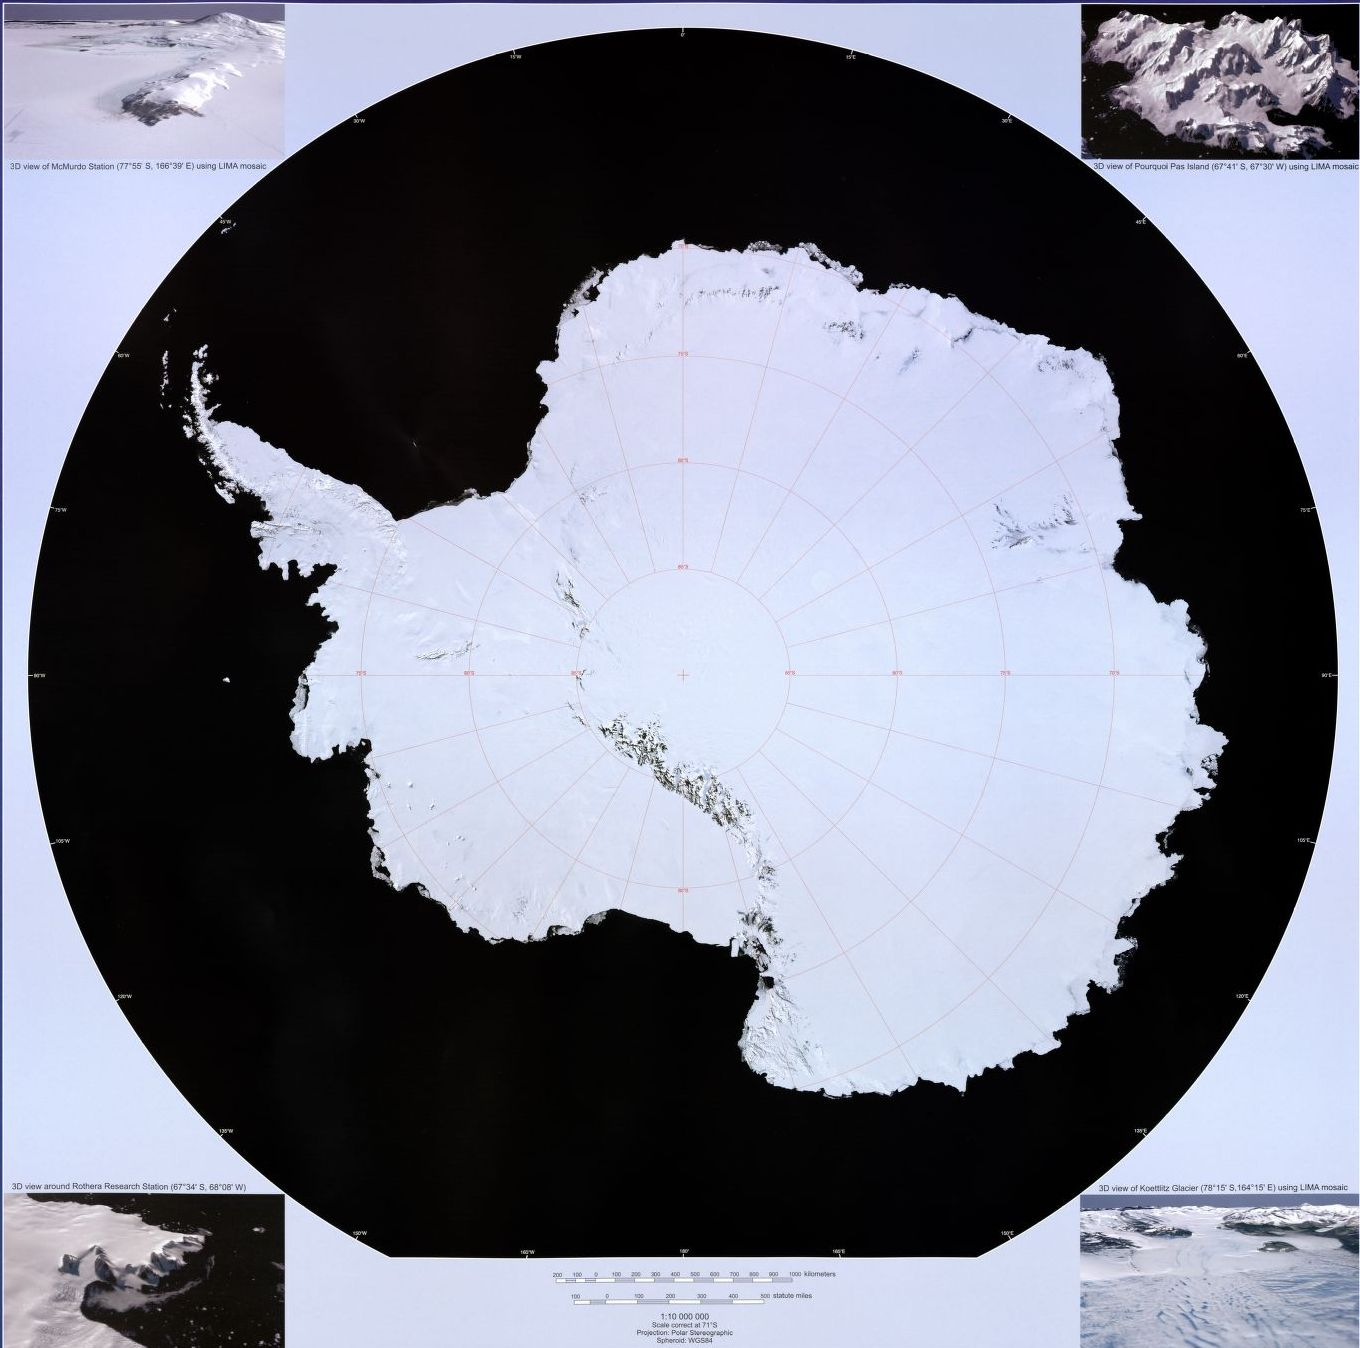 #ICYMI an iceberg 100x the size of Manhattan broke off Antarctica.Use our maps to explore the affected area #LarsenC https://t.co/mwyb9SCZka https://t.co/wTZ02F1kag